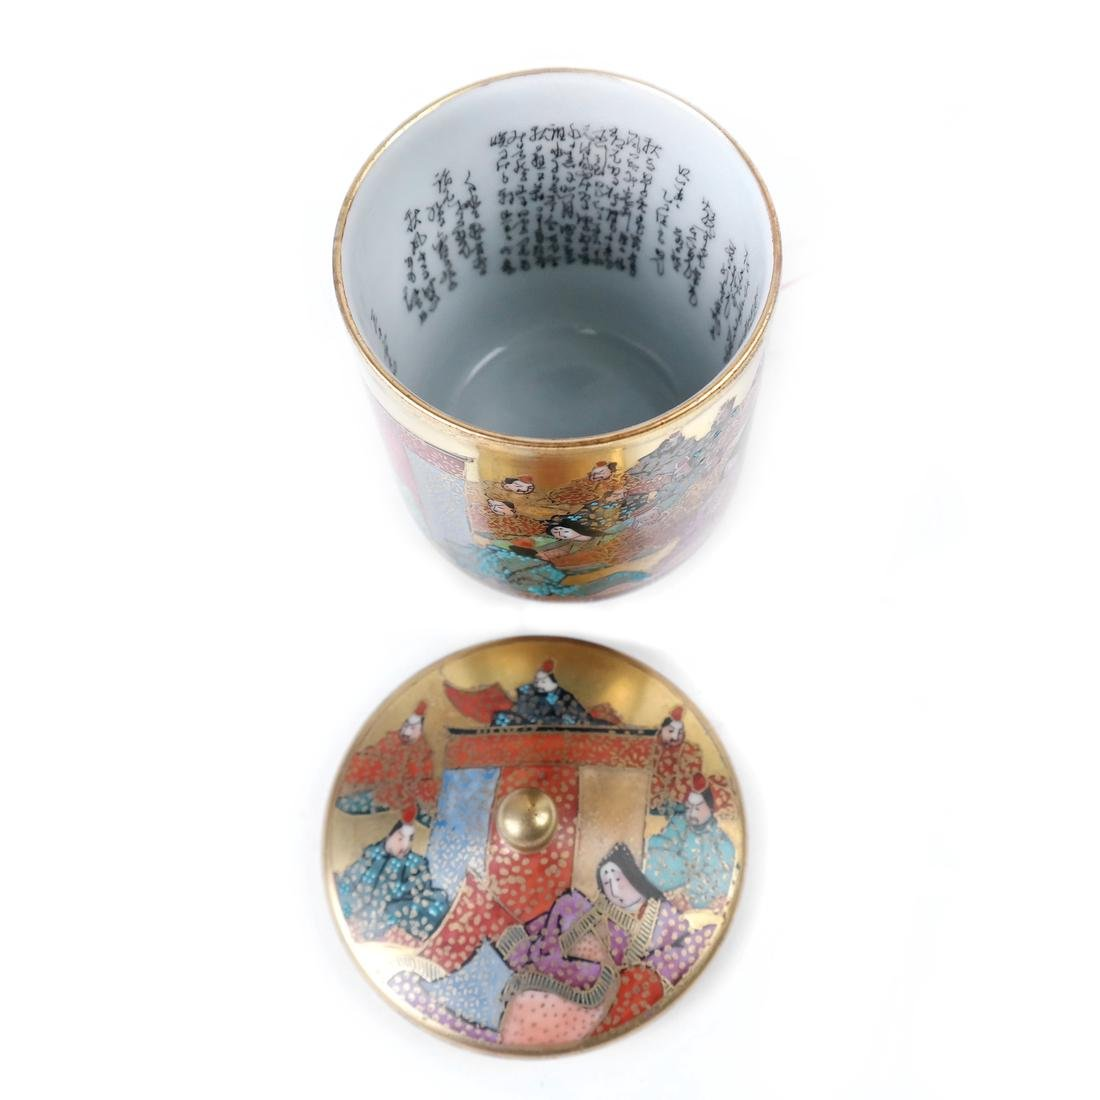 Japanese Kutami Porcelain Covered Cup - 5